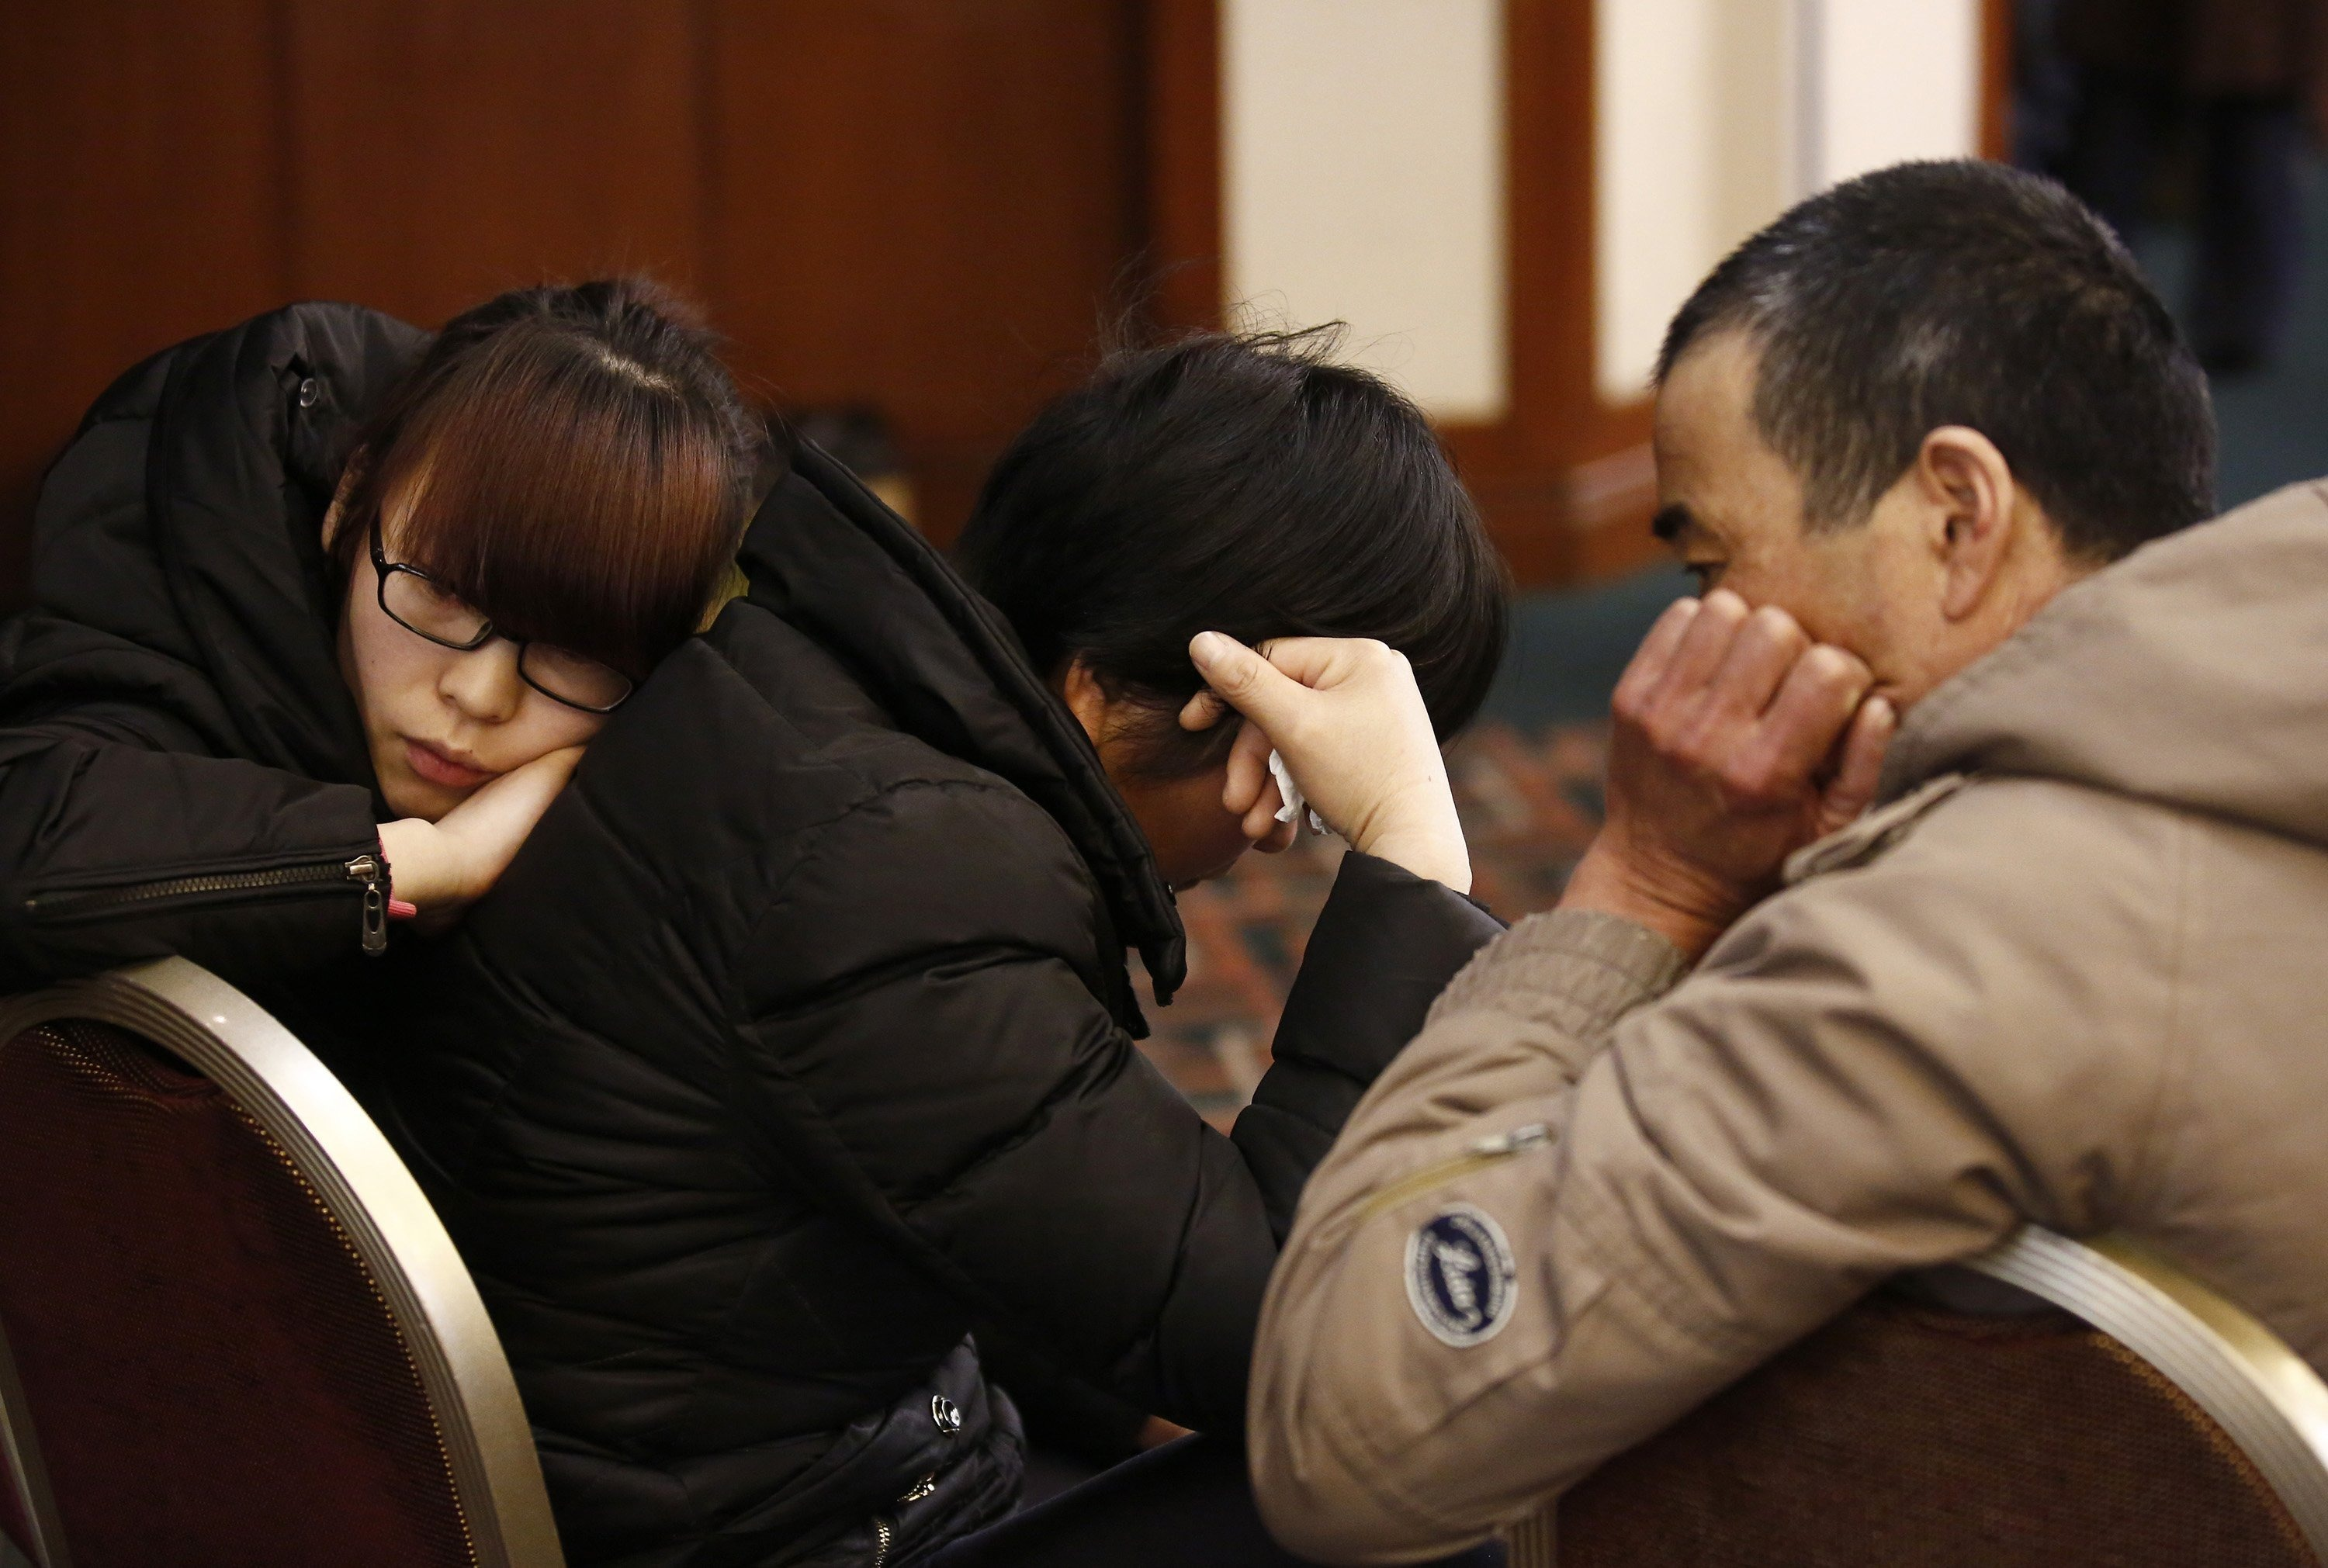 Family members of a passenger onboard the missing Malaysia Airlines Flight 370 react as they listen to a briefing from the airline company at a hotel in Beijing on March 18, 2014